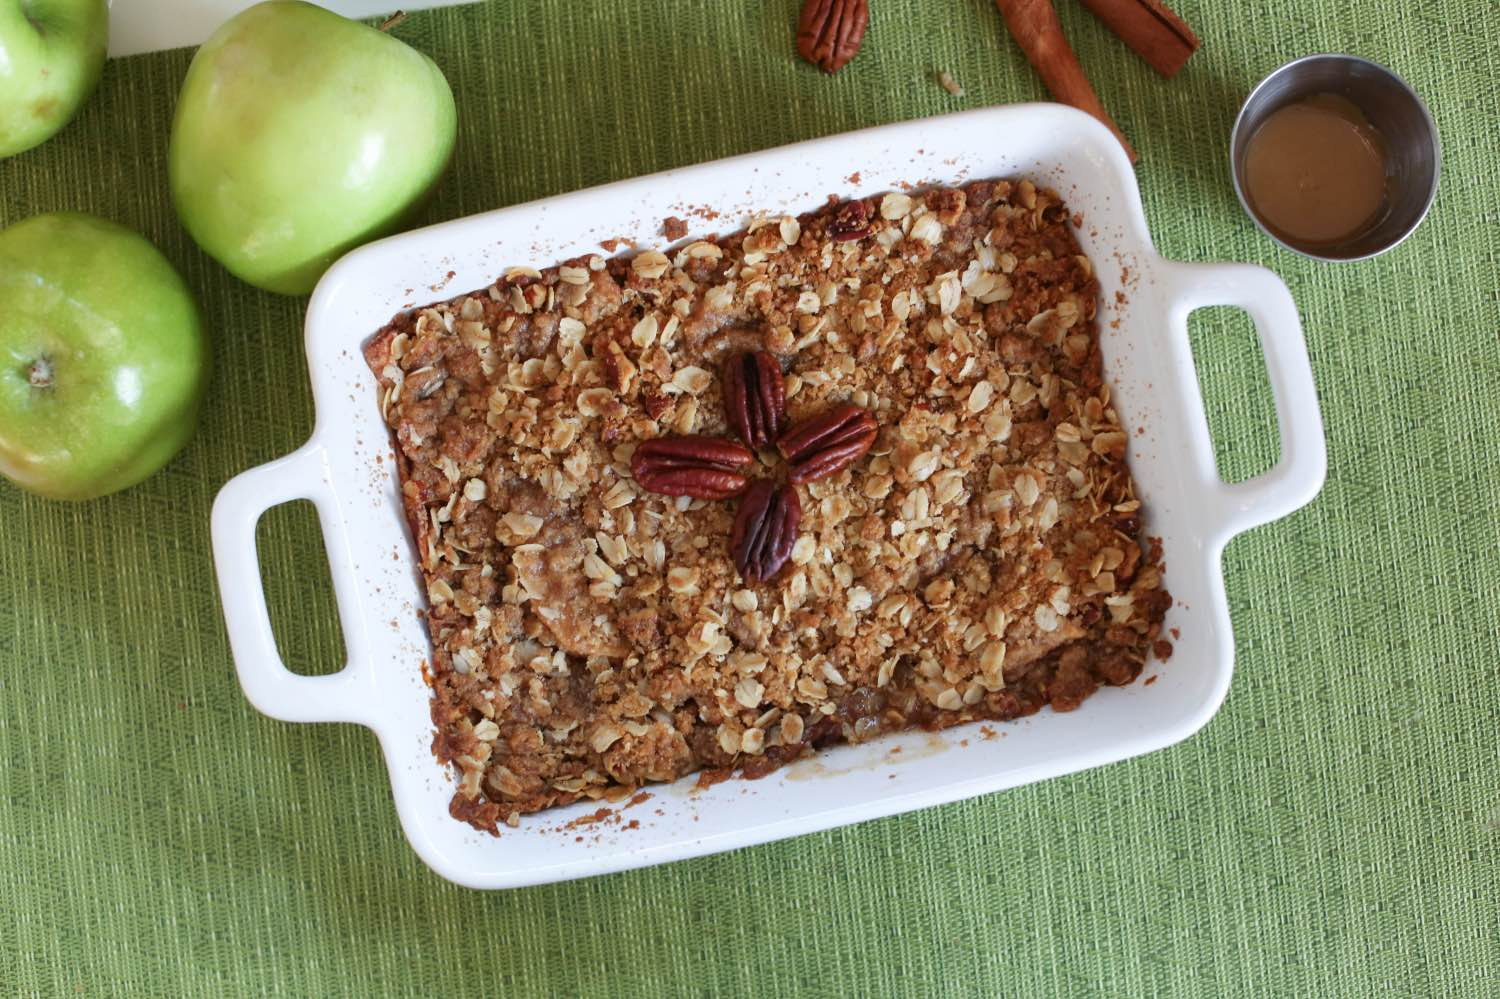 baked apple crisp recipe by pop shop america